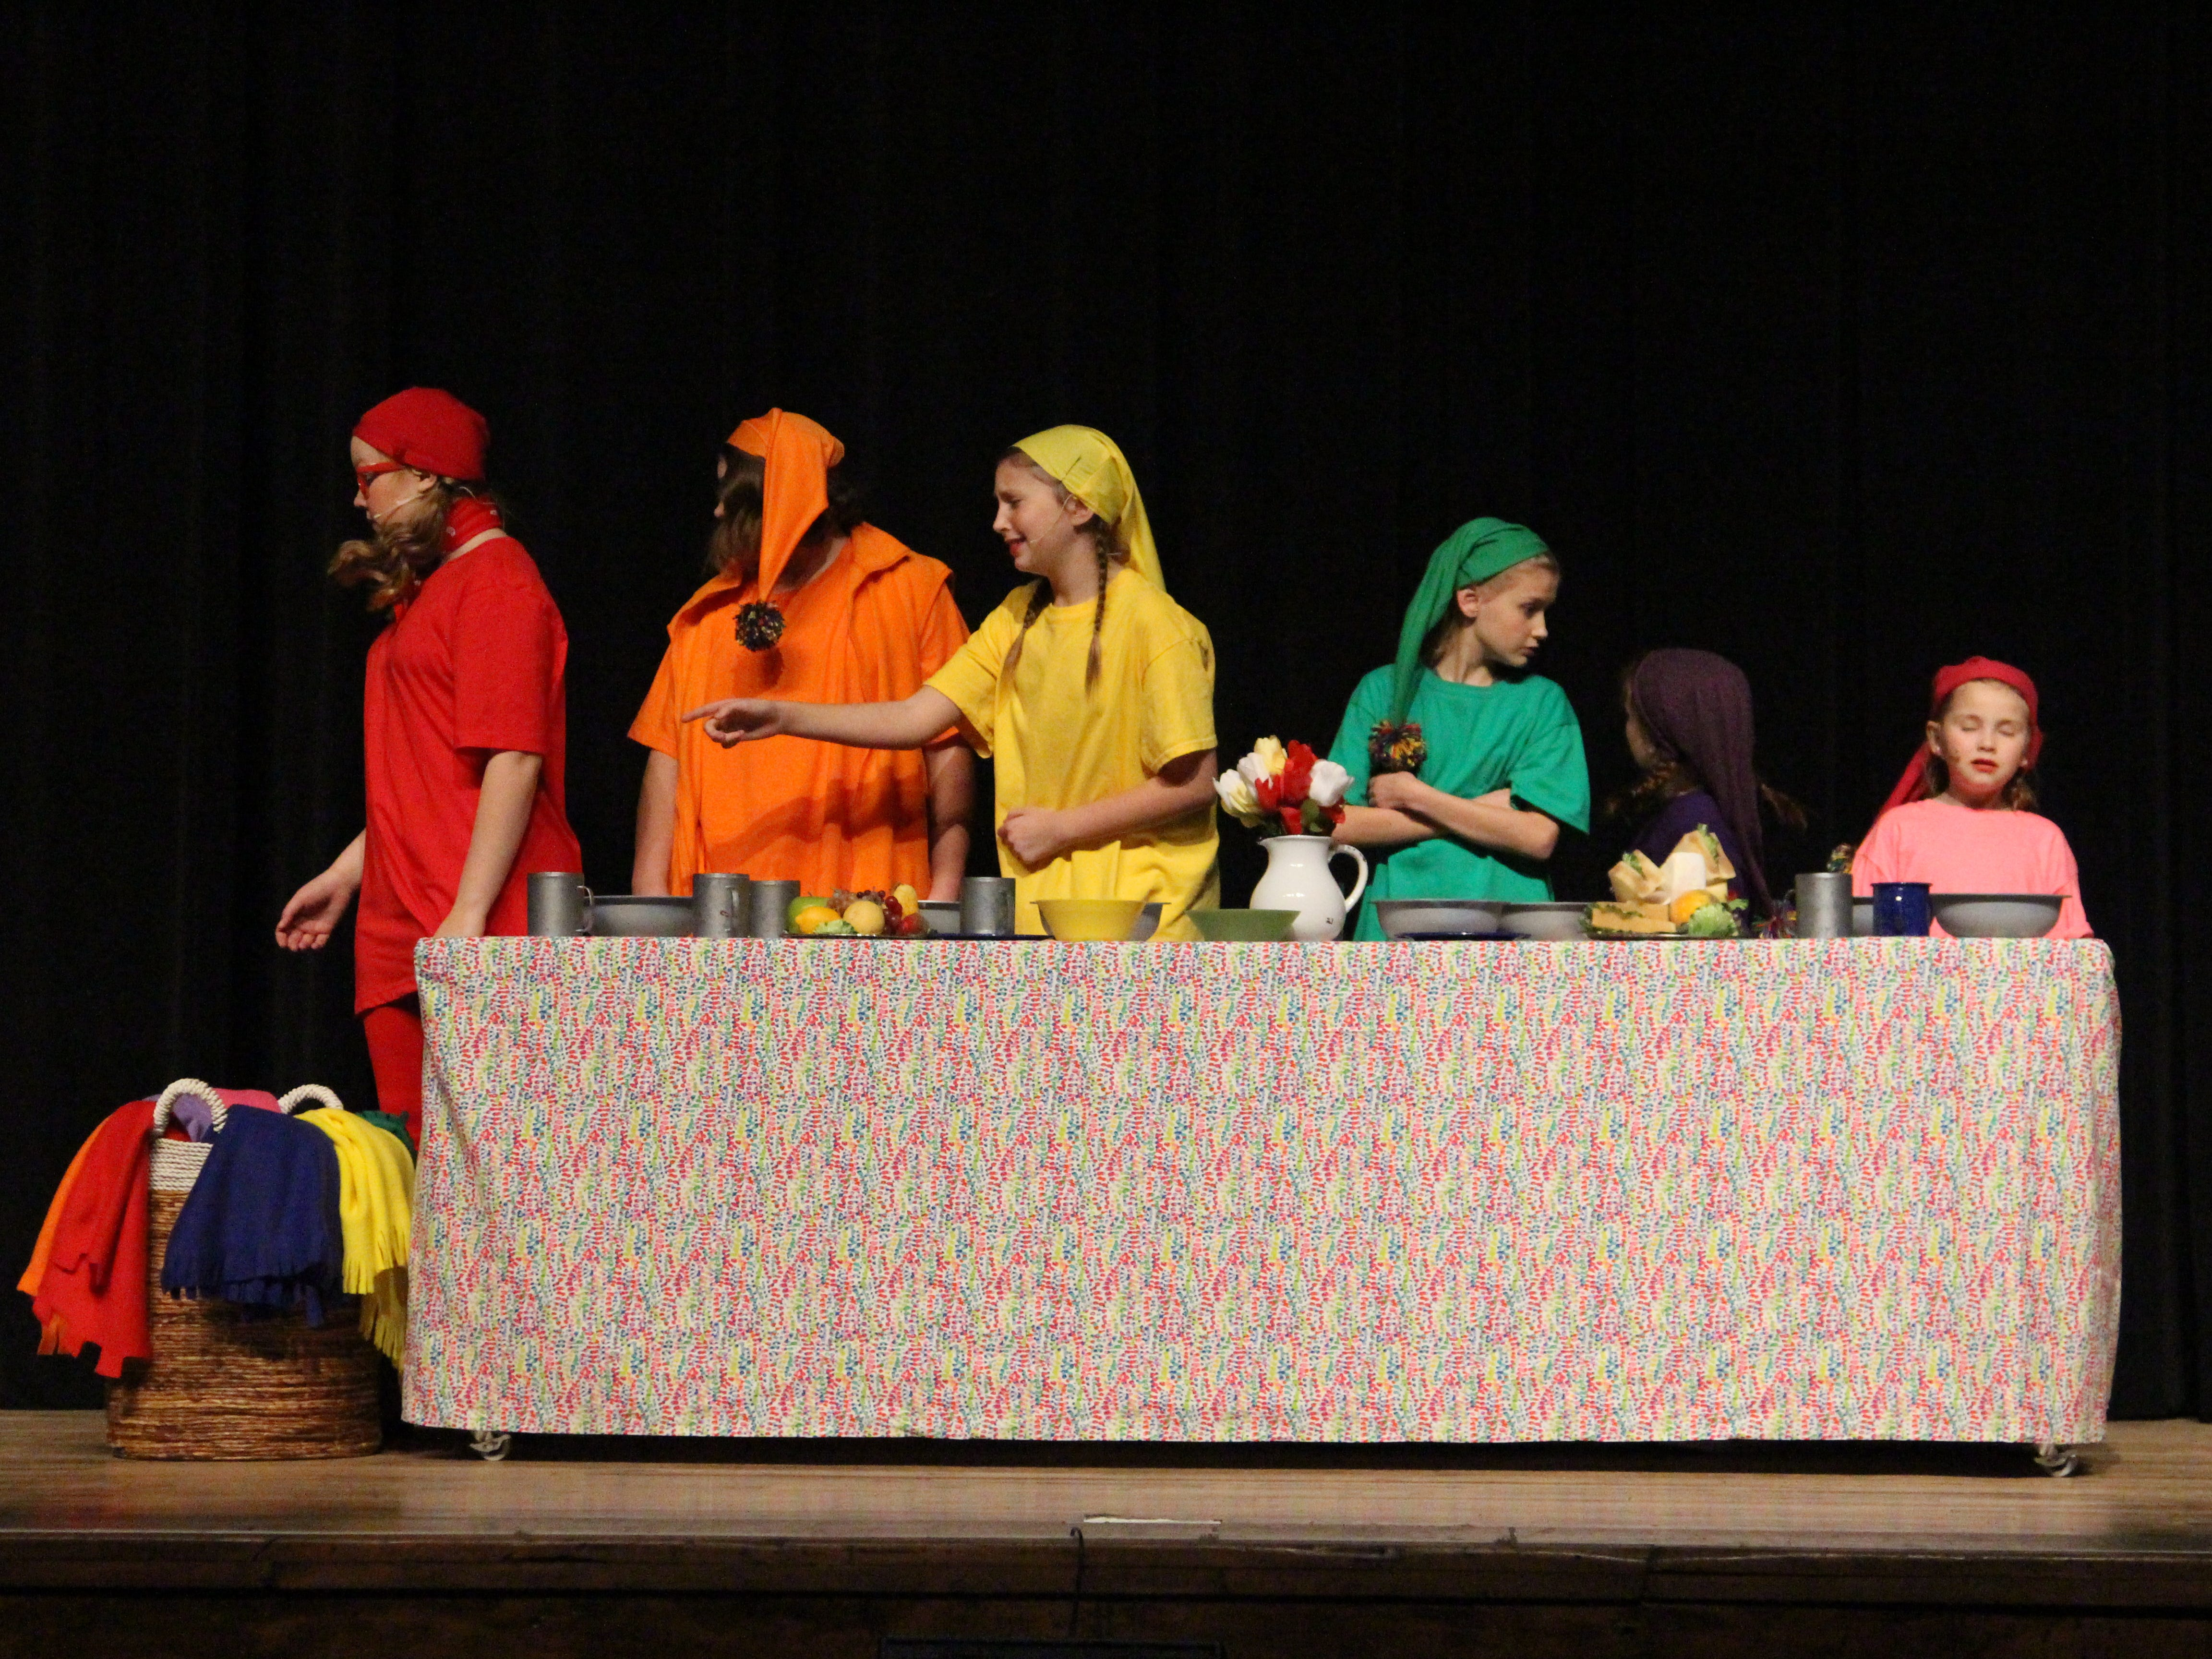 """The dwarves notice Snow White lying in their home in the Marion Palace Theatre's production of """"The Tale of Snow White,"""" an adaptation of the classic fairy tale. Showtimes are at 7:30 p.m. Friday and Saturday, Feb. 8 and 9 and at  2 p.m. Sunday, Feb. 10."""